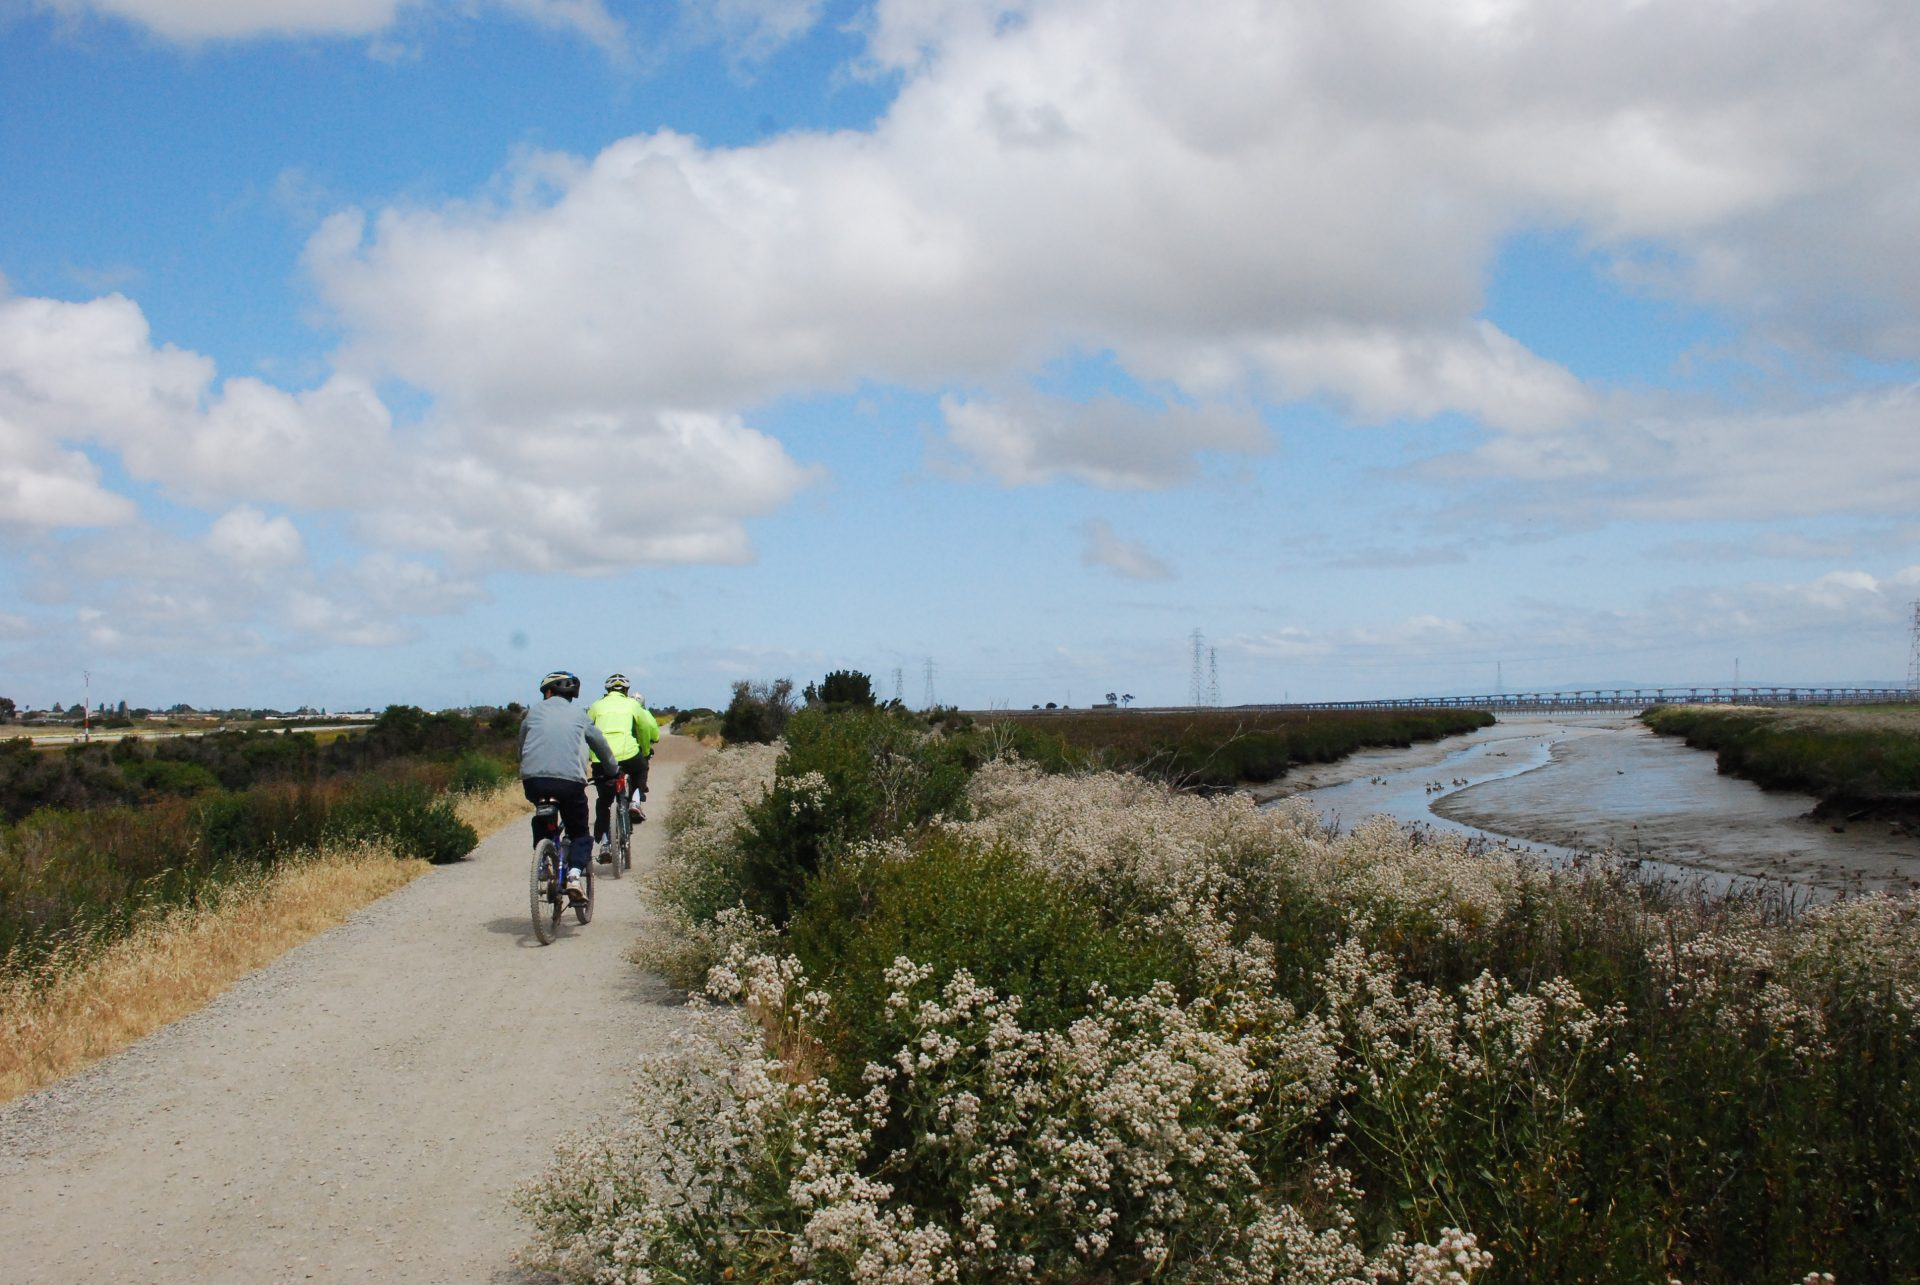 Two bicyclists ride on gravel path, with blooming shrubs in foreground